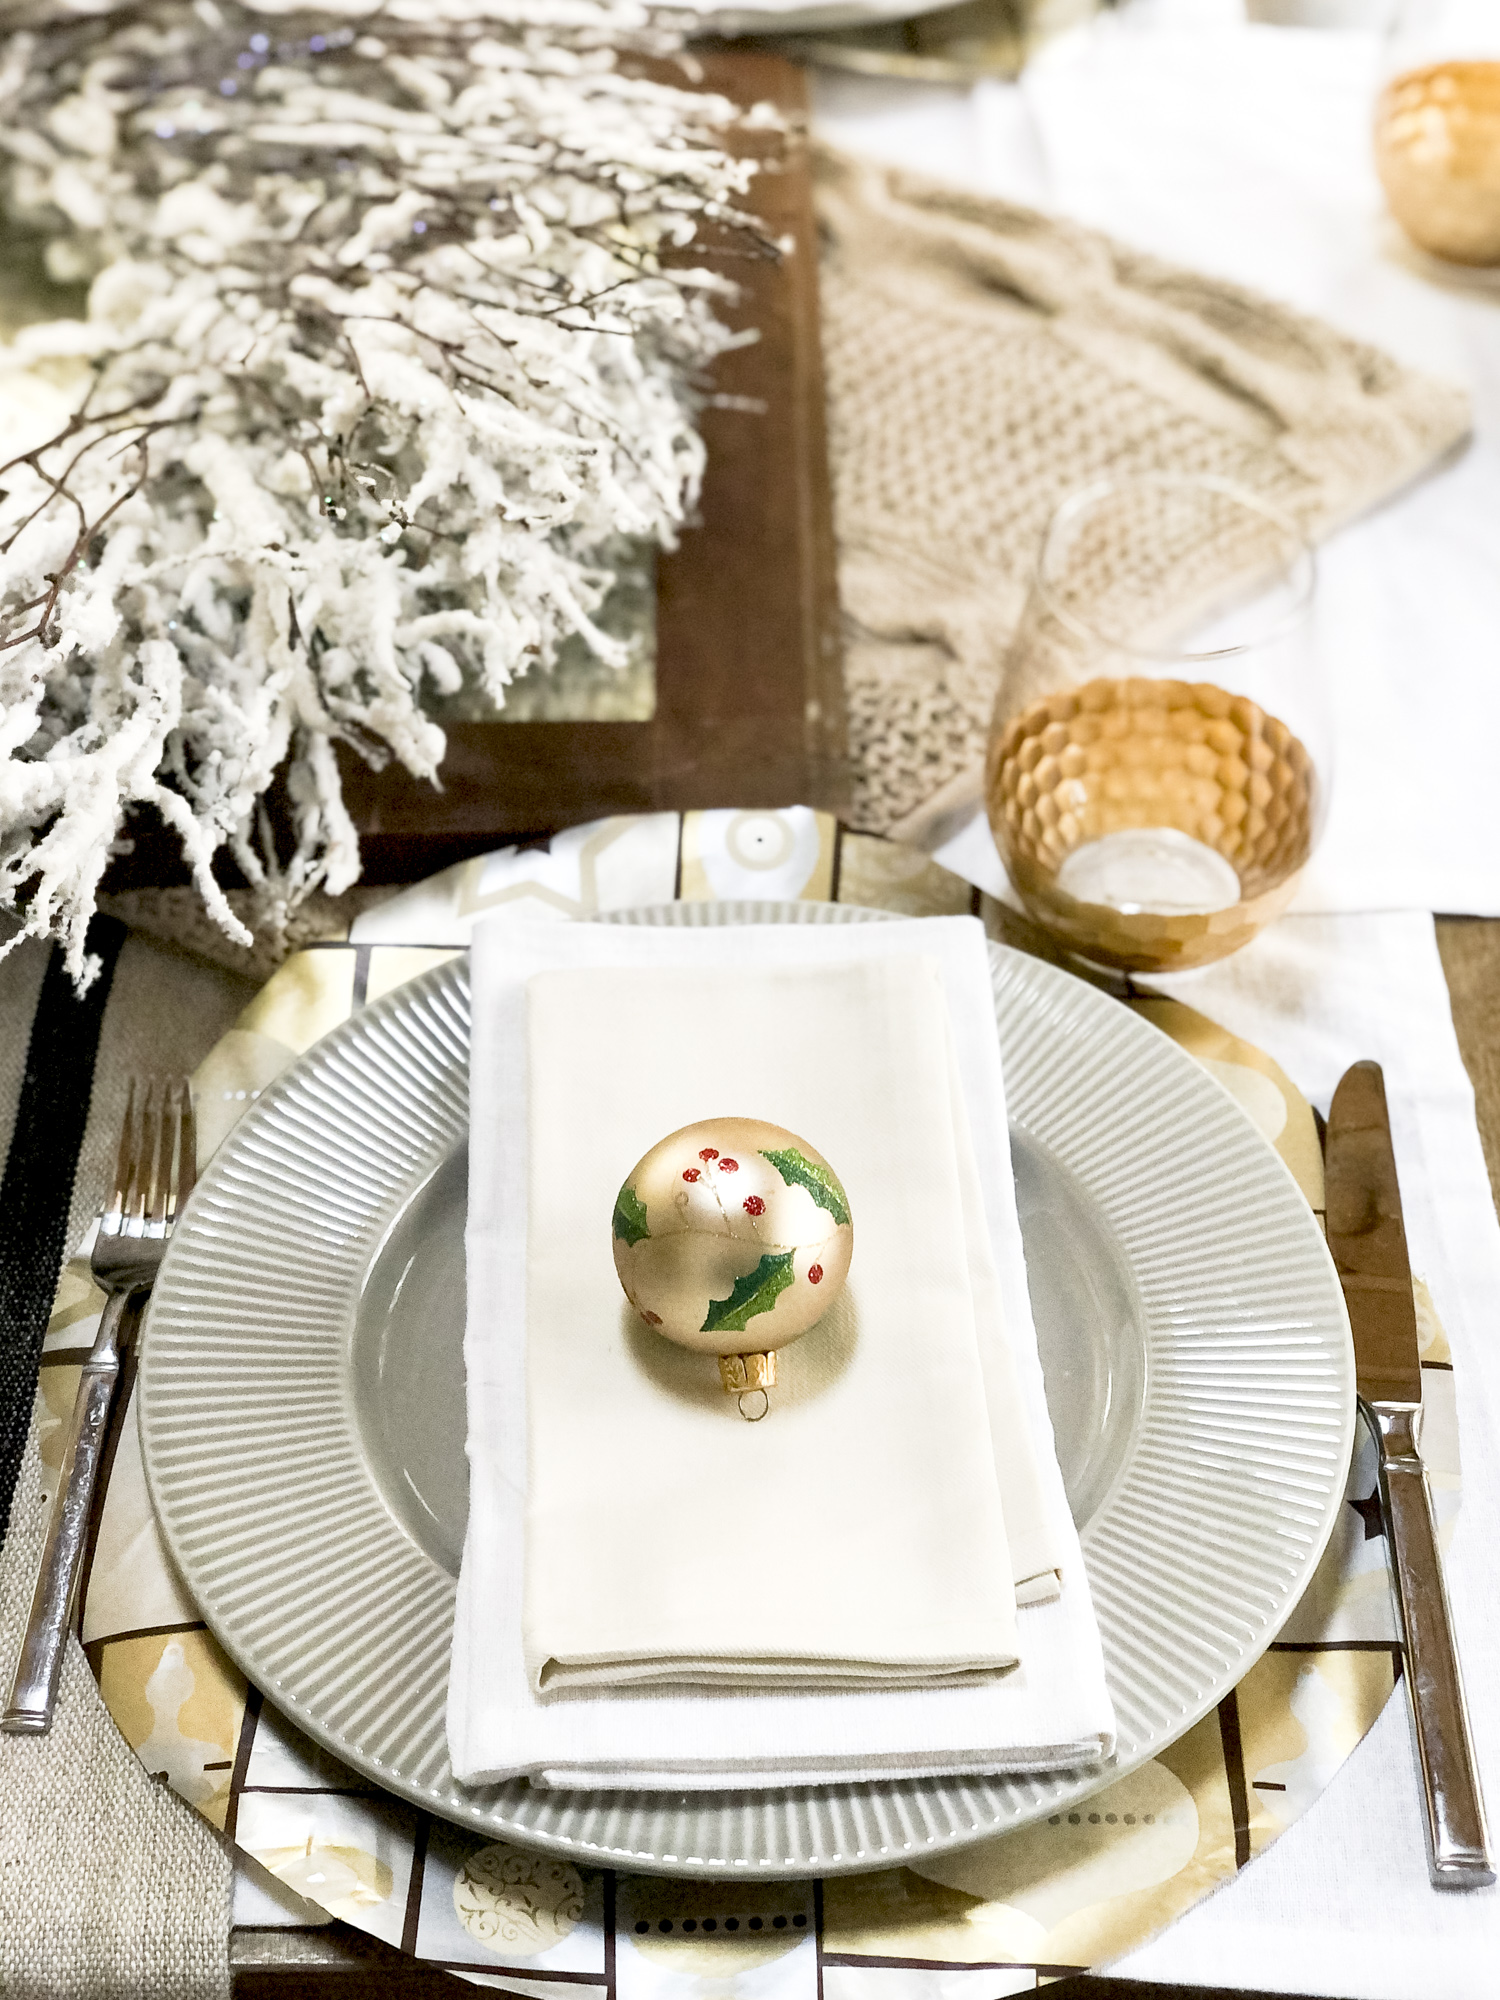 DIY Chargers for a Christmas place setting.